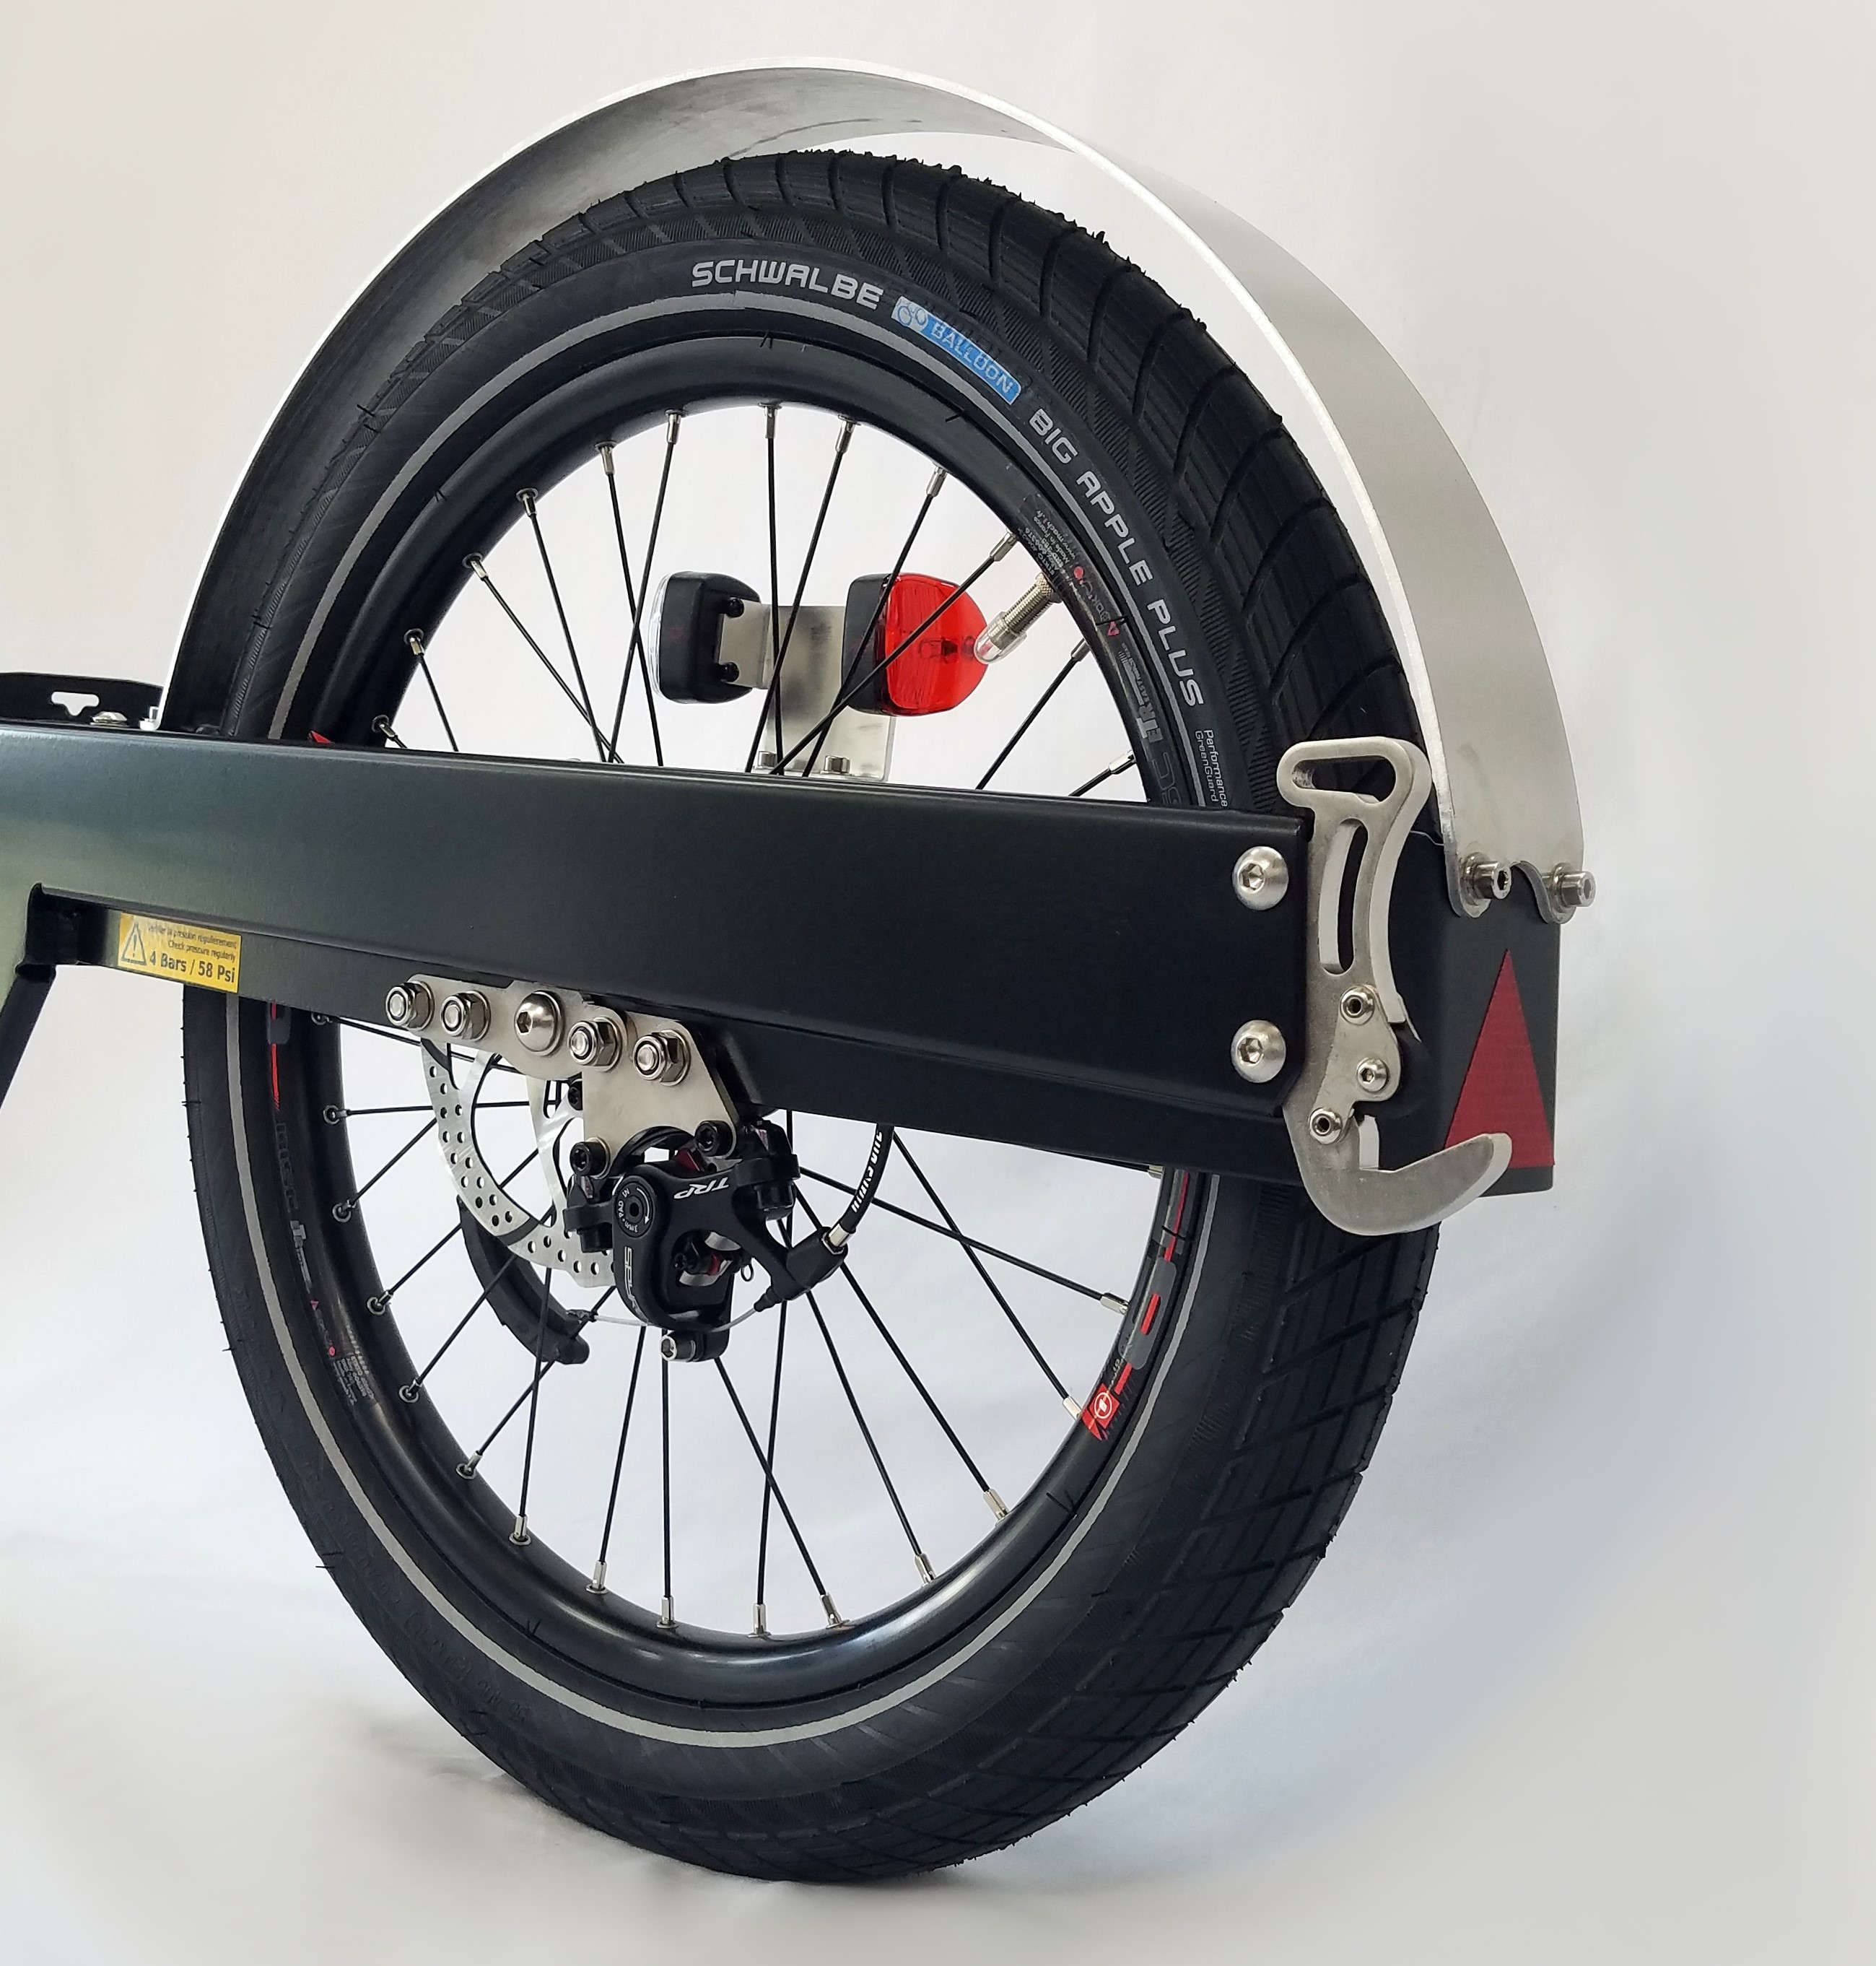 Part of a bike trailer with wheel, disc brake, hook, mudguard and a red and white light